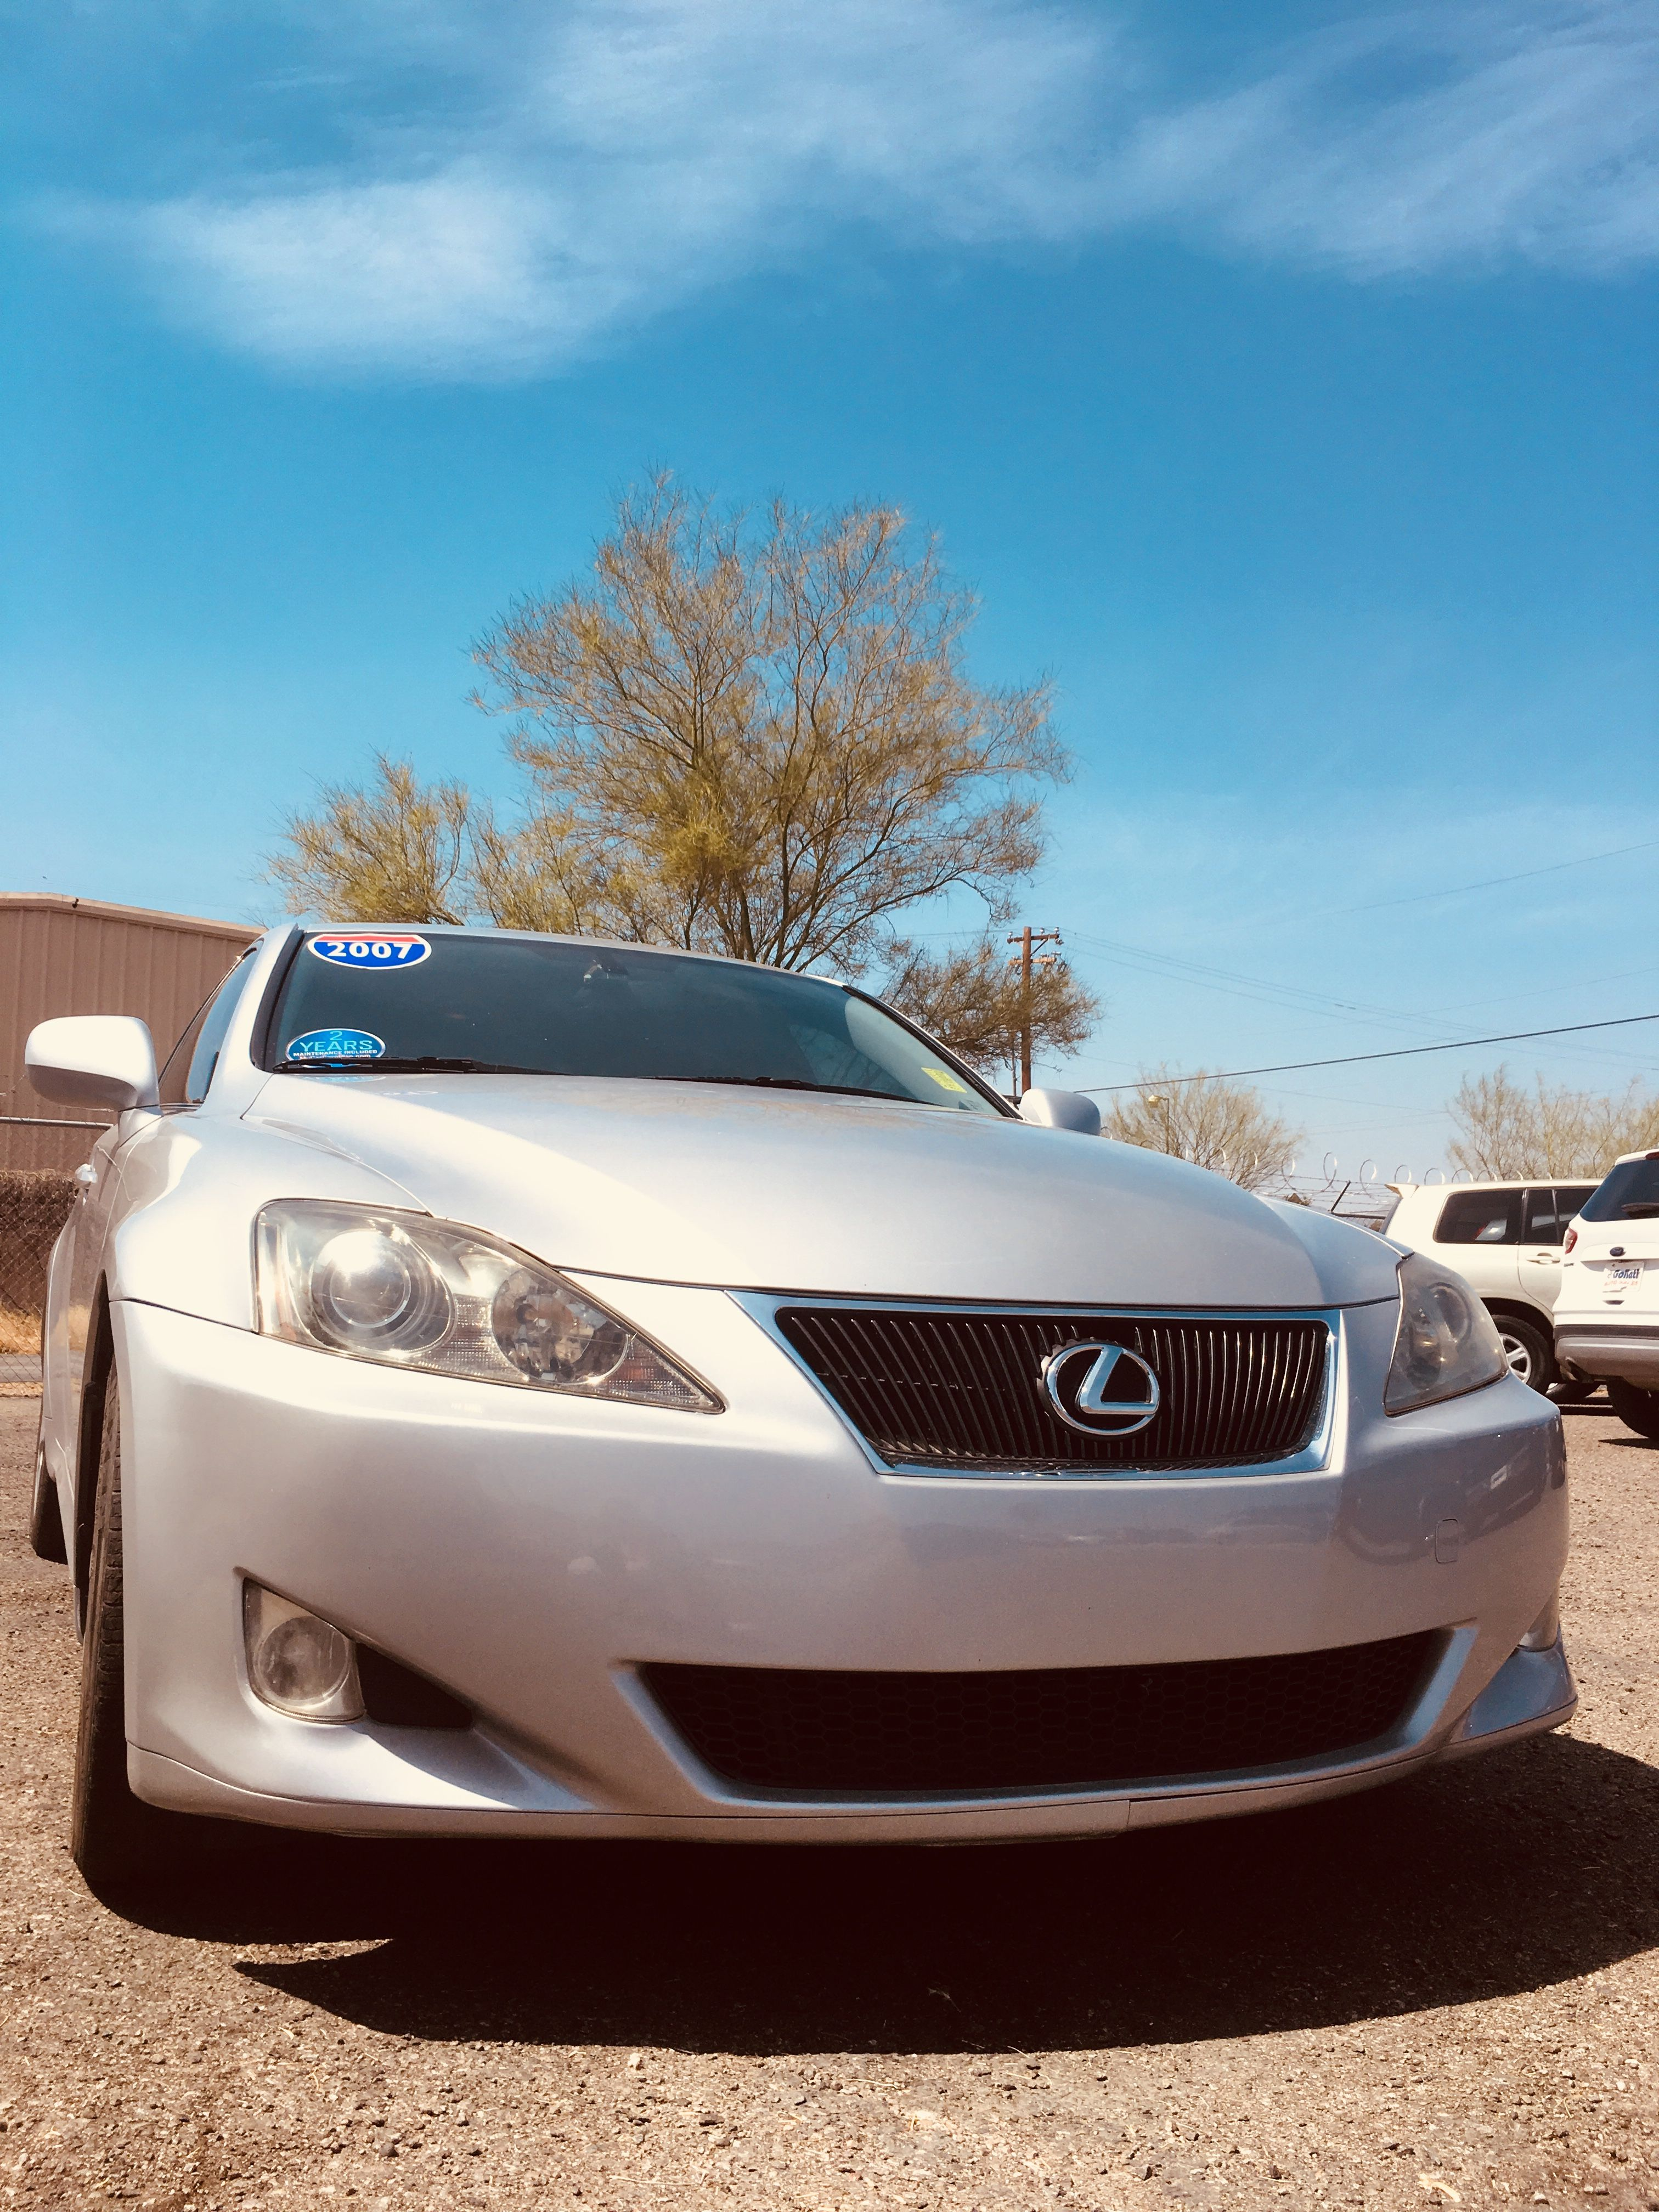 Lx Is 250 Arizona Cars Tucson Lexus Swag Cars For Sale Cars For Sale Used Used Cars